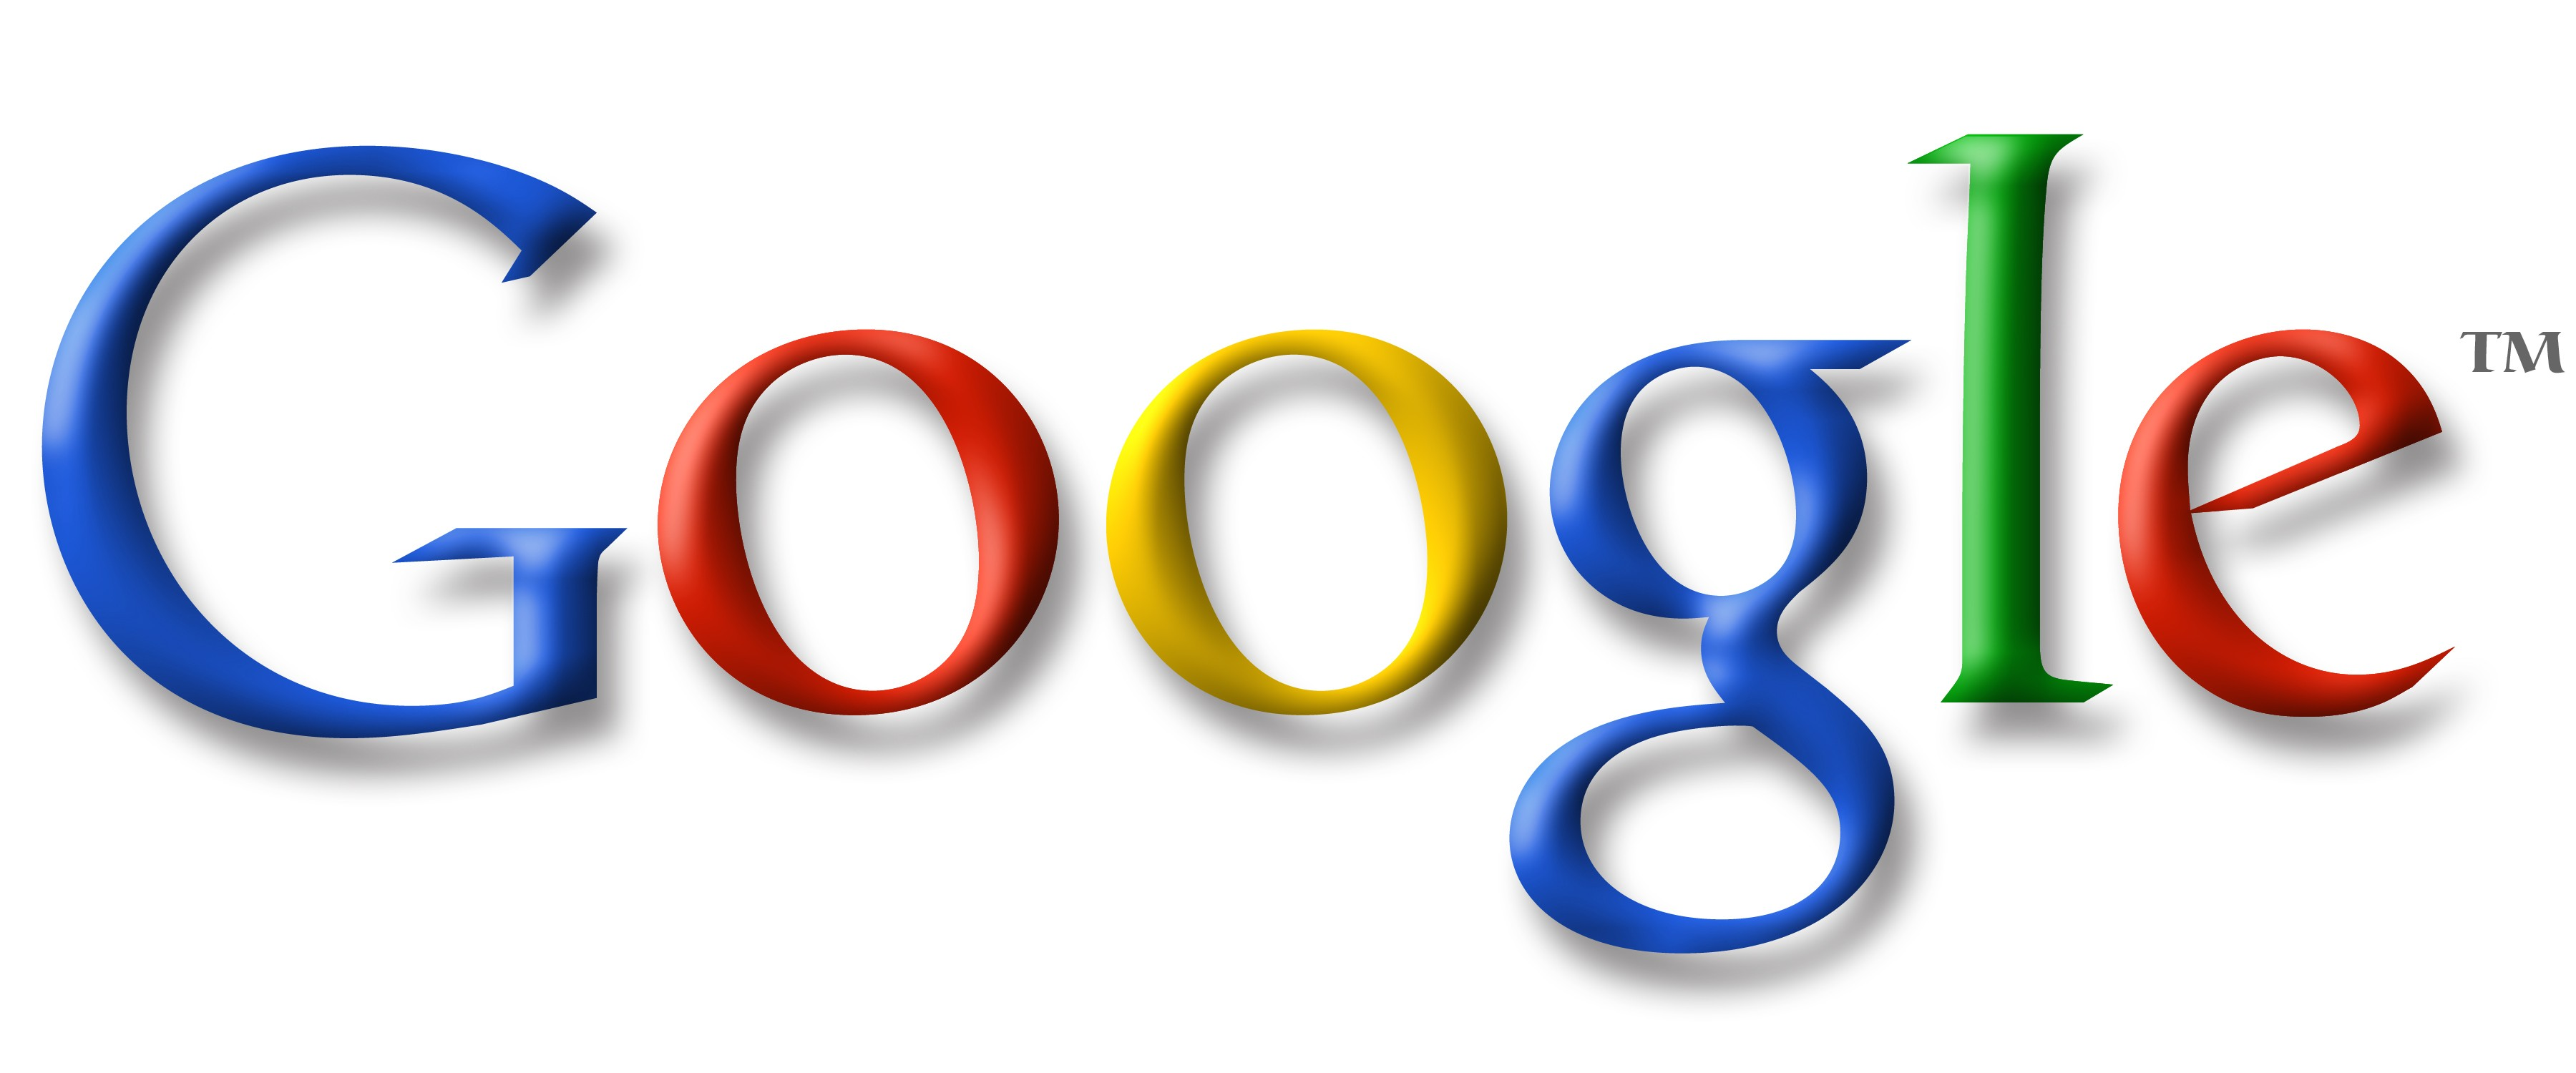 google-q3-financial-results-exceed-expectations IMG